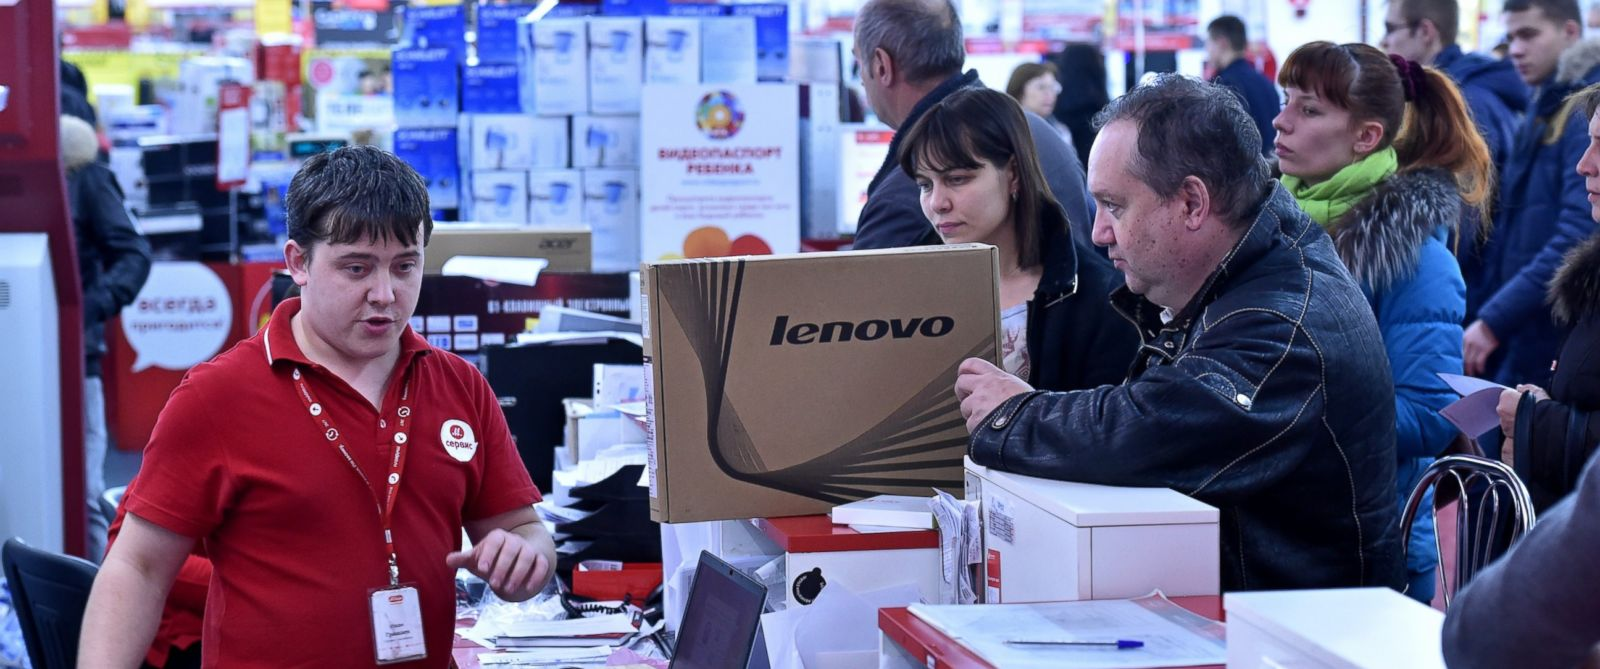 PHOTO: Shoppers line up to buy electronics at a mall in central Moscow on Dec. 15, 2014.